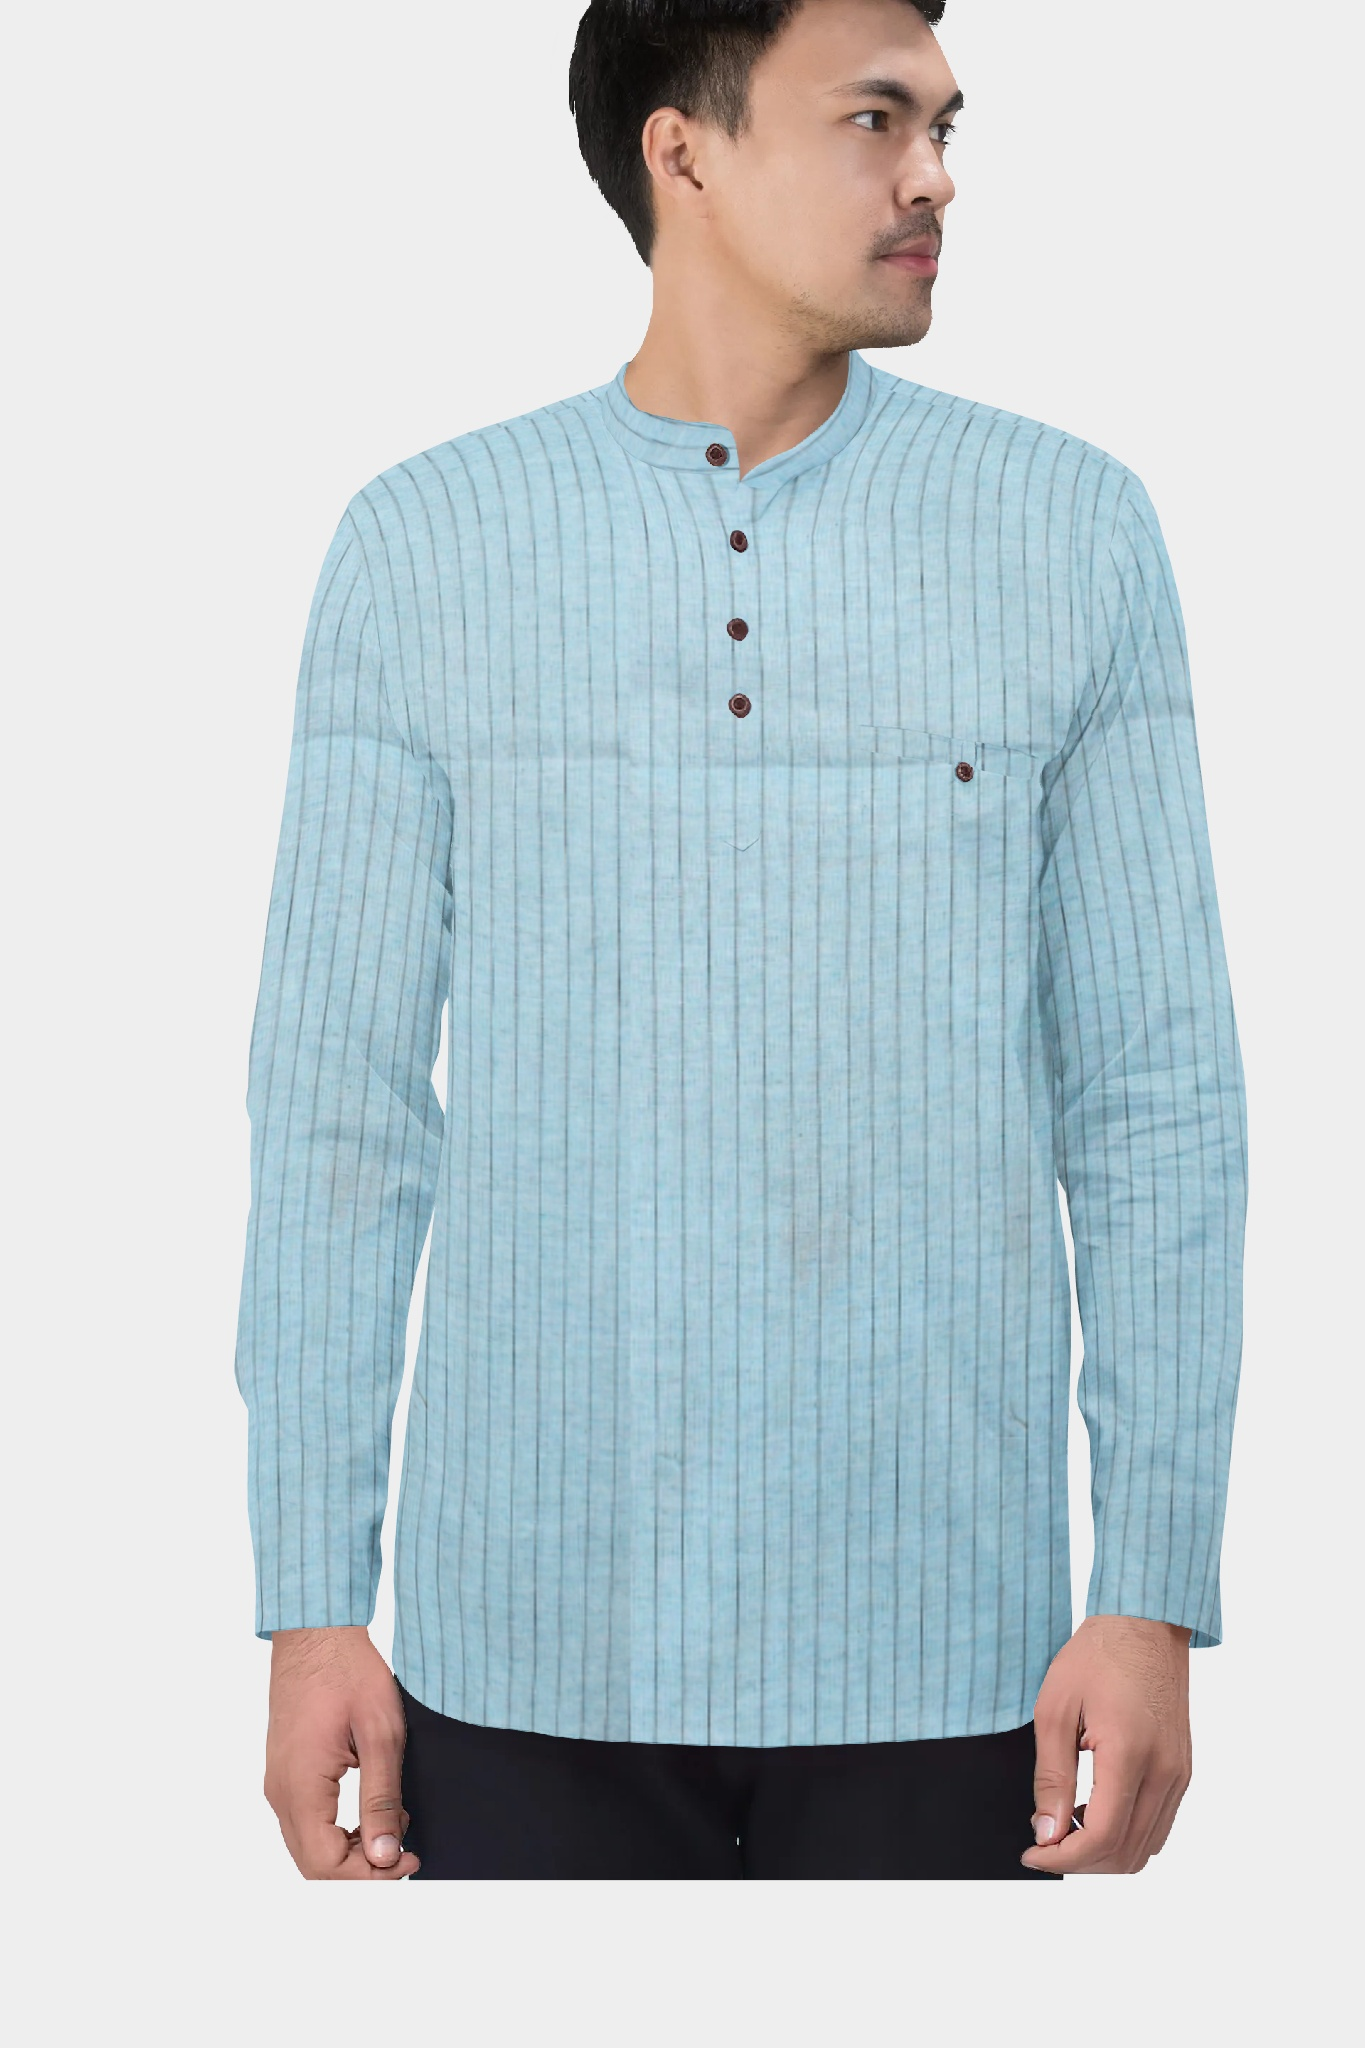 Cyan Blue Cotton Striped Short Kurta-35434